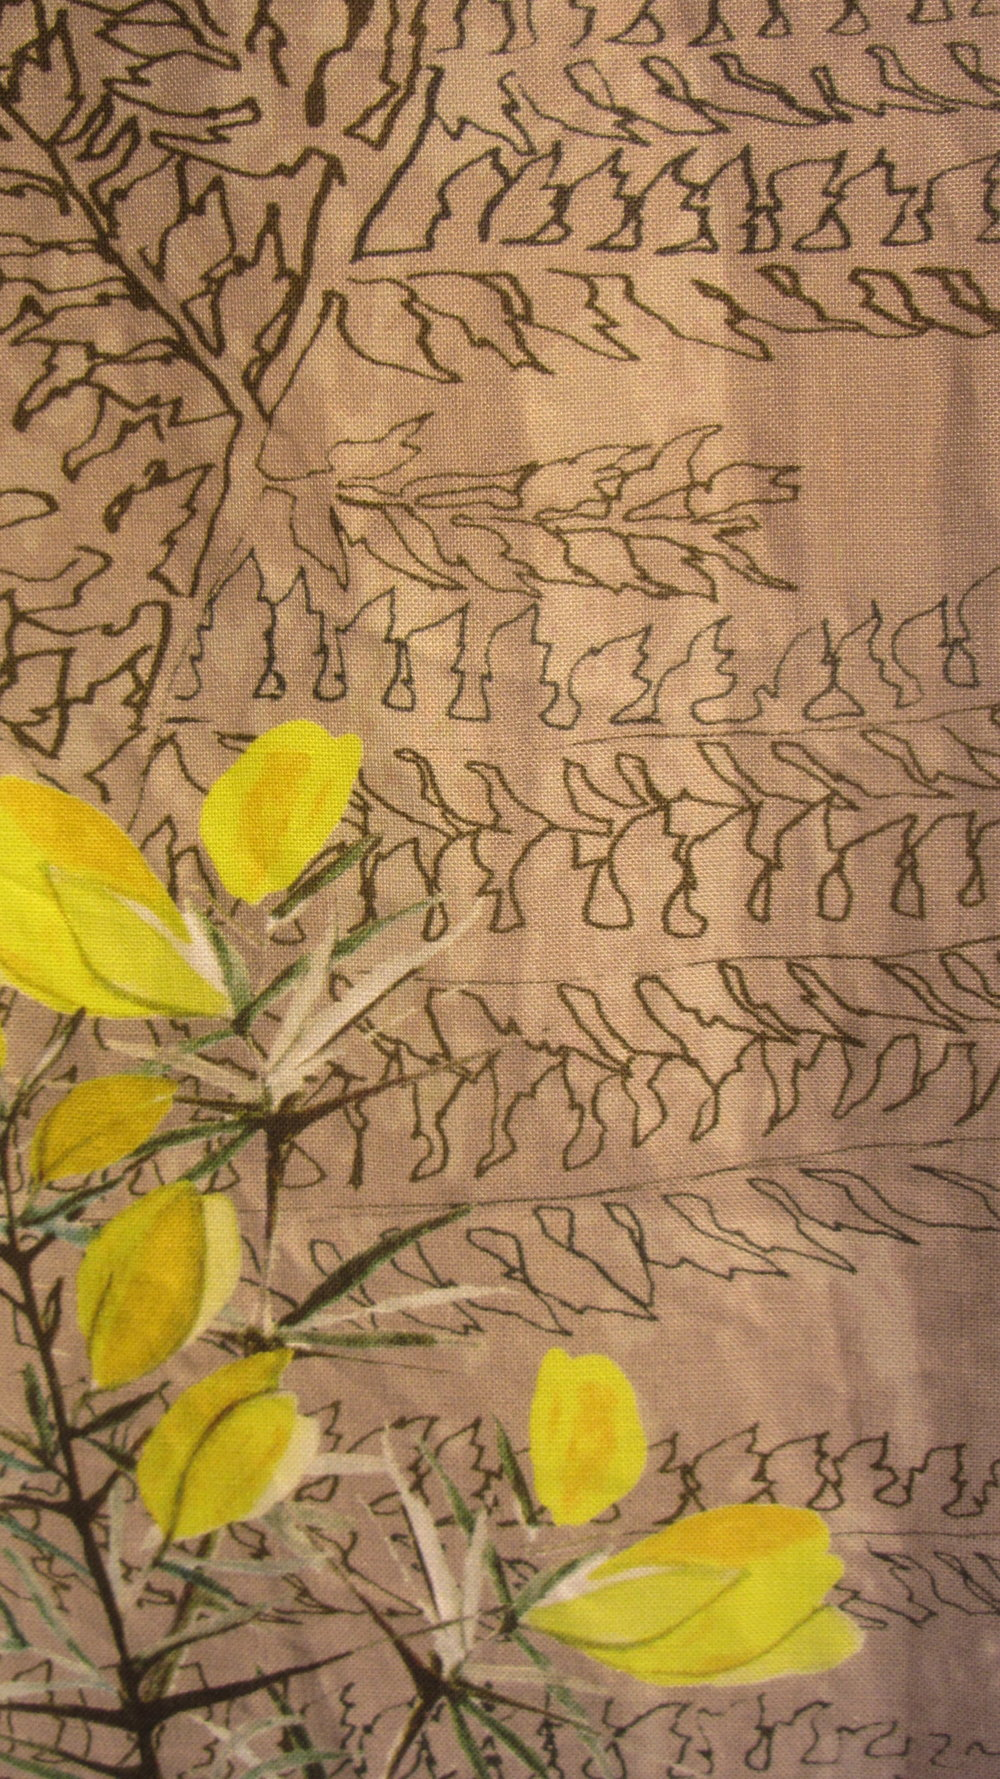 Gorse and fern. Digital print on Irish linen. Detail